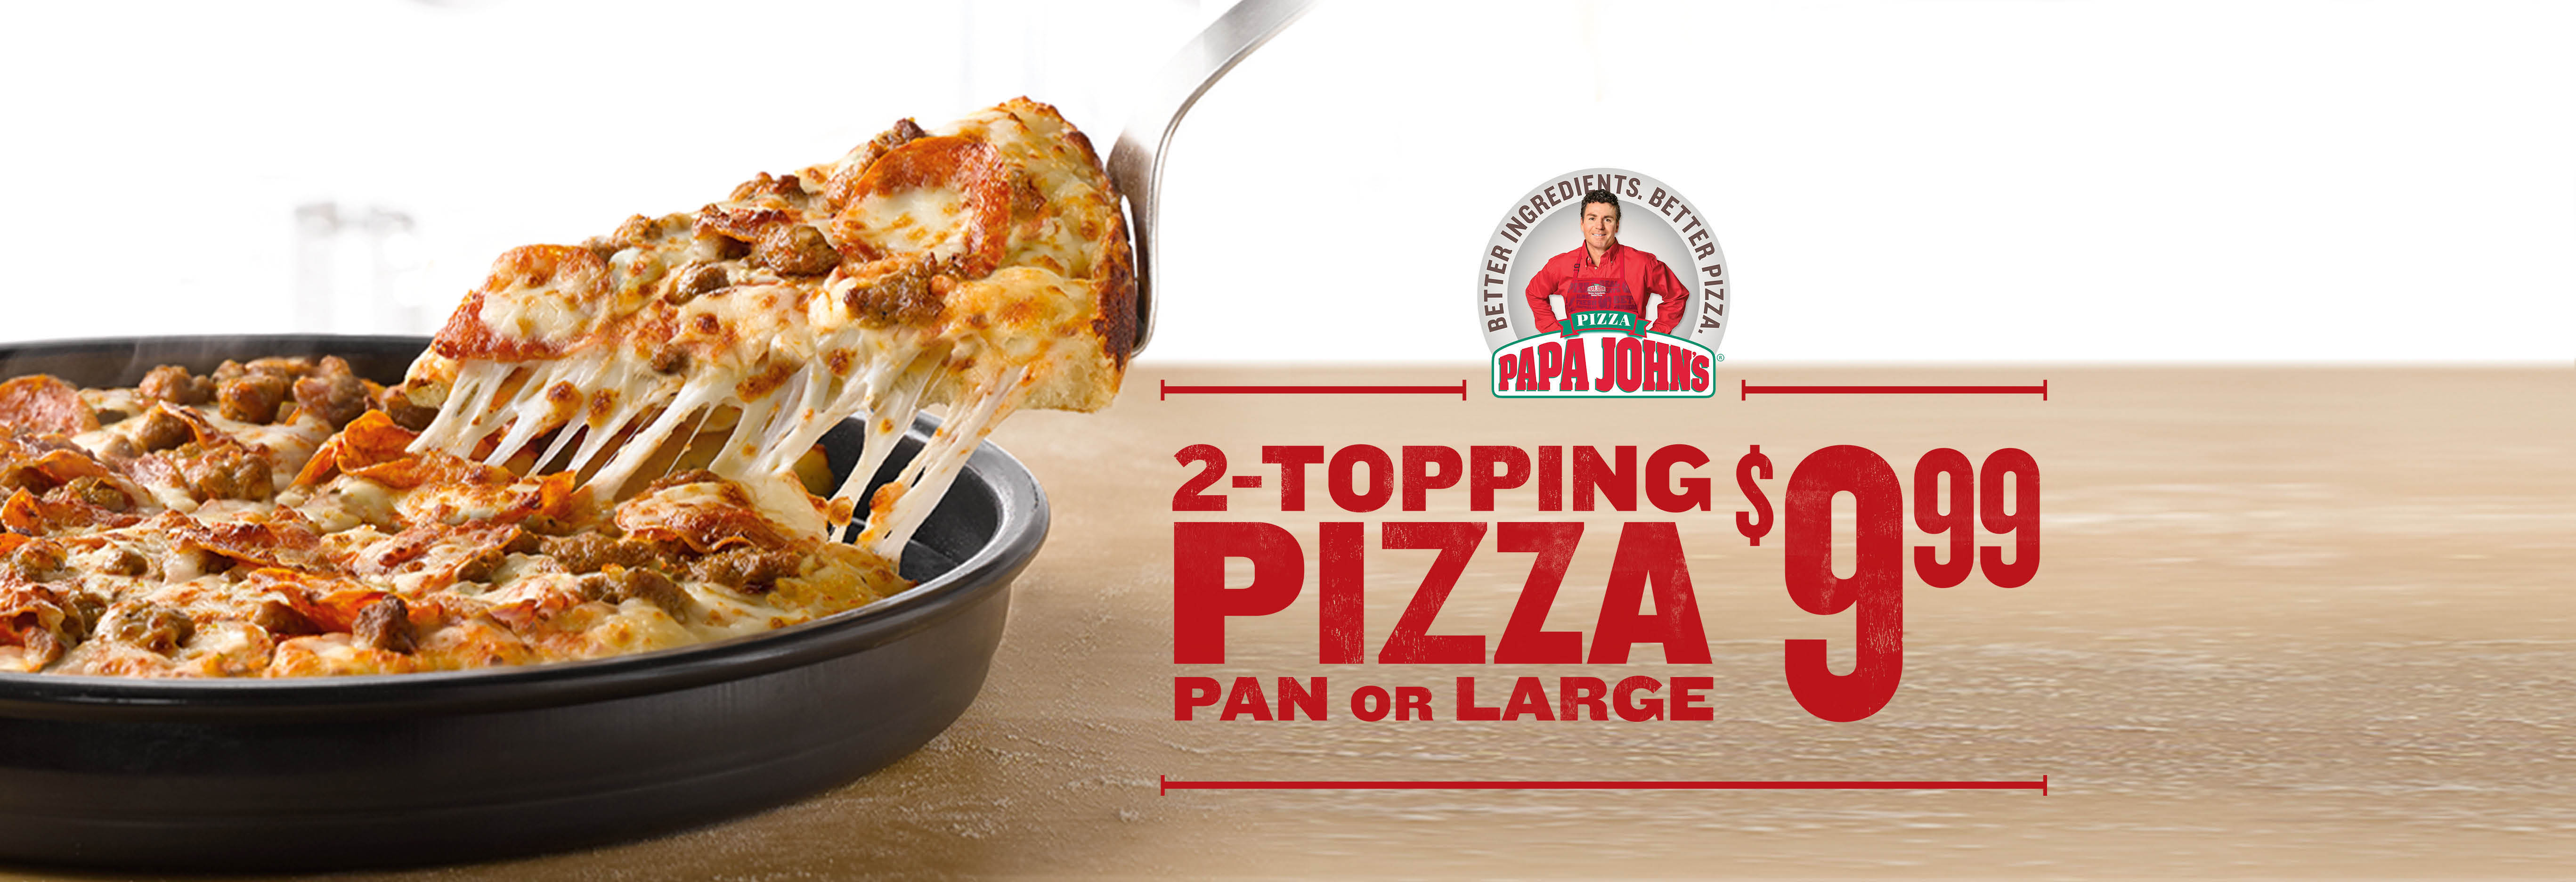 Papa John's Pizza Deals